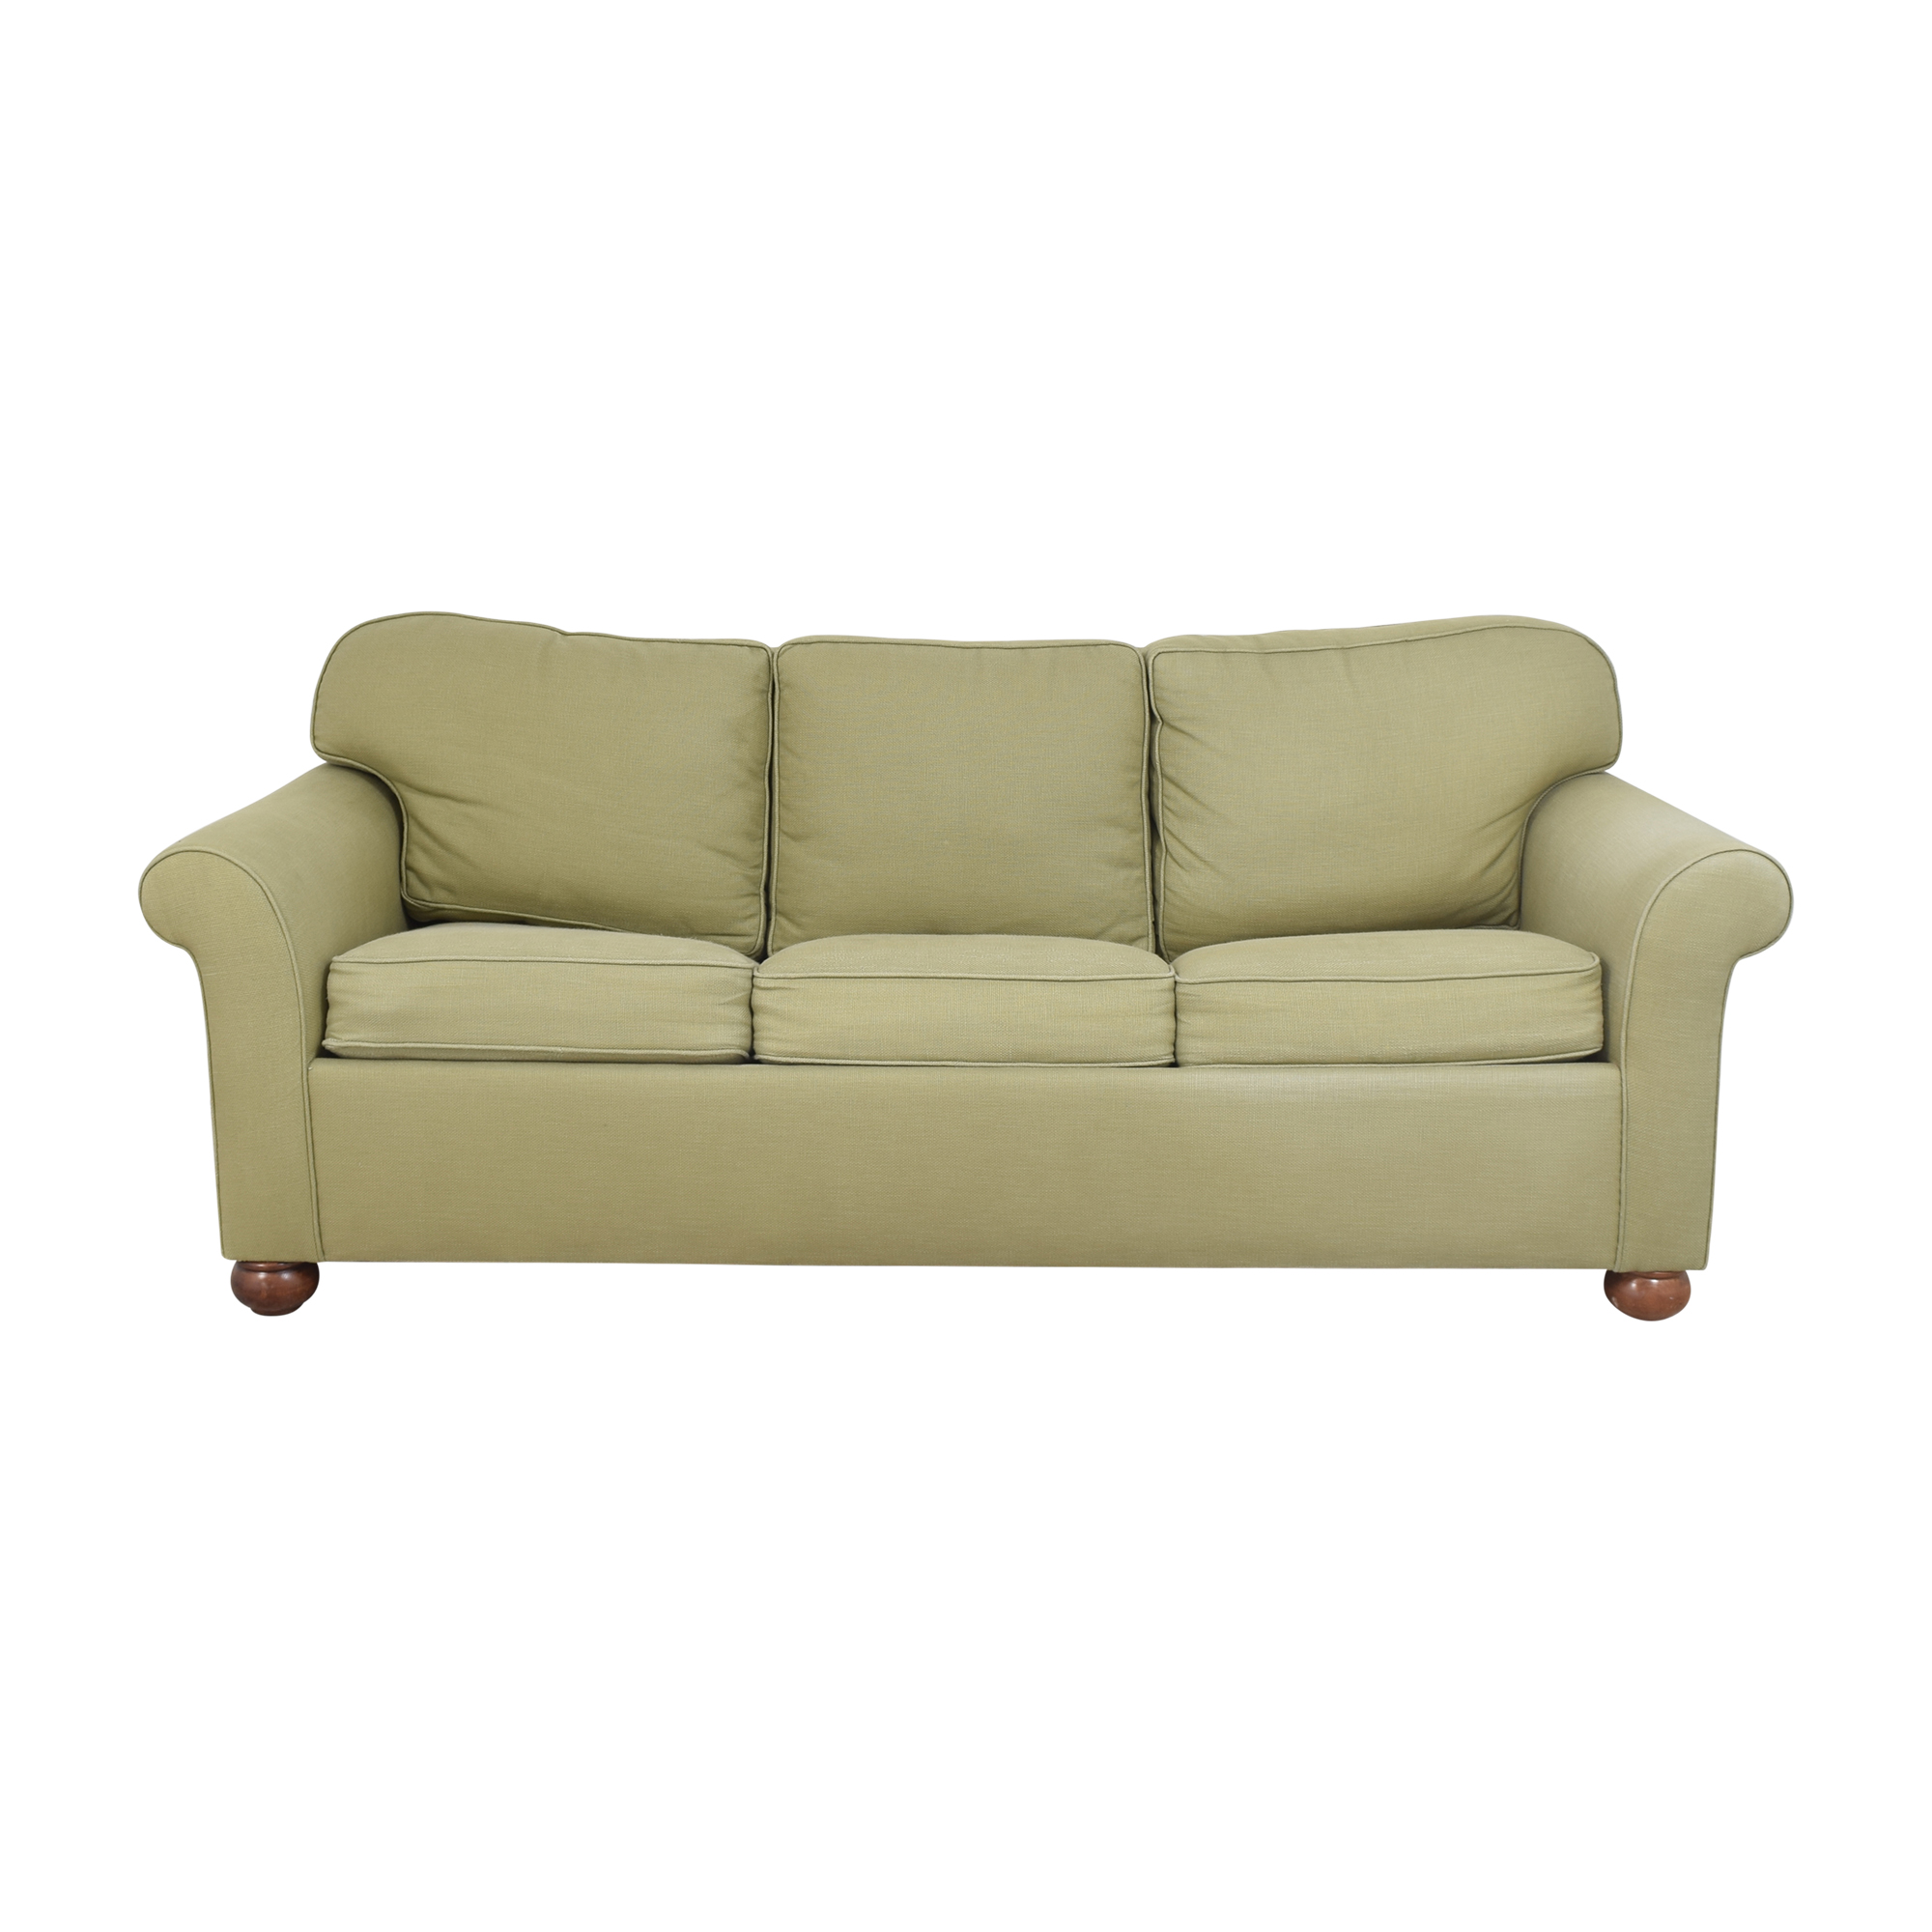 Three Cushion Sleeper Sofa price